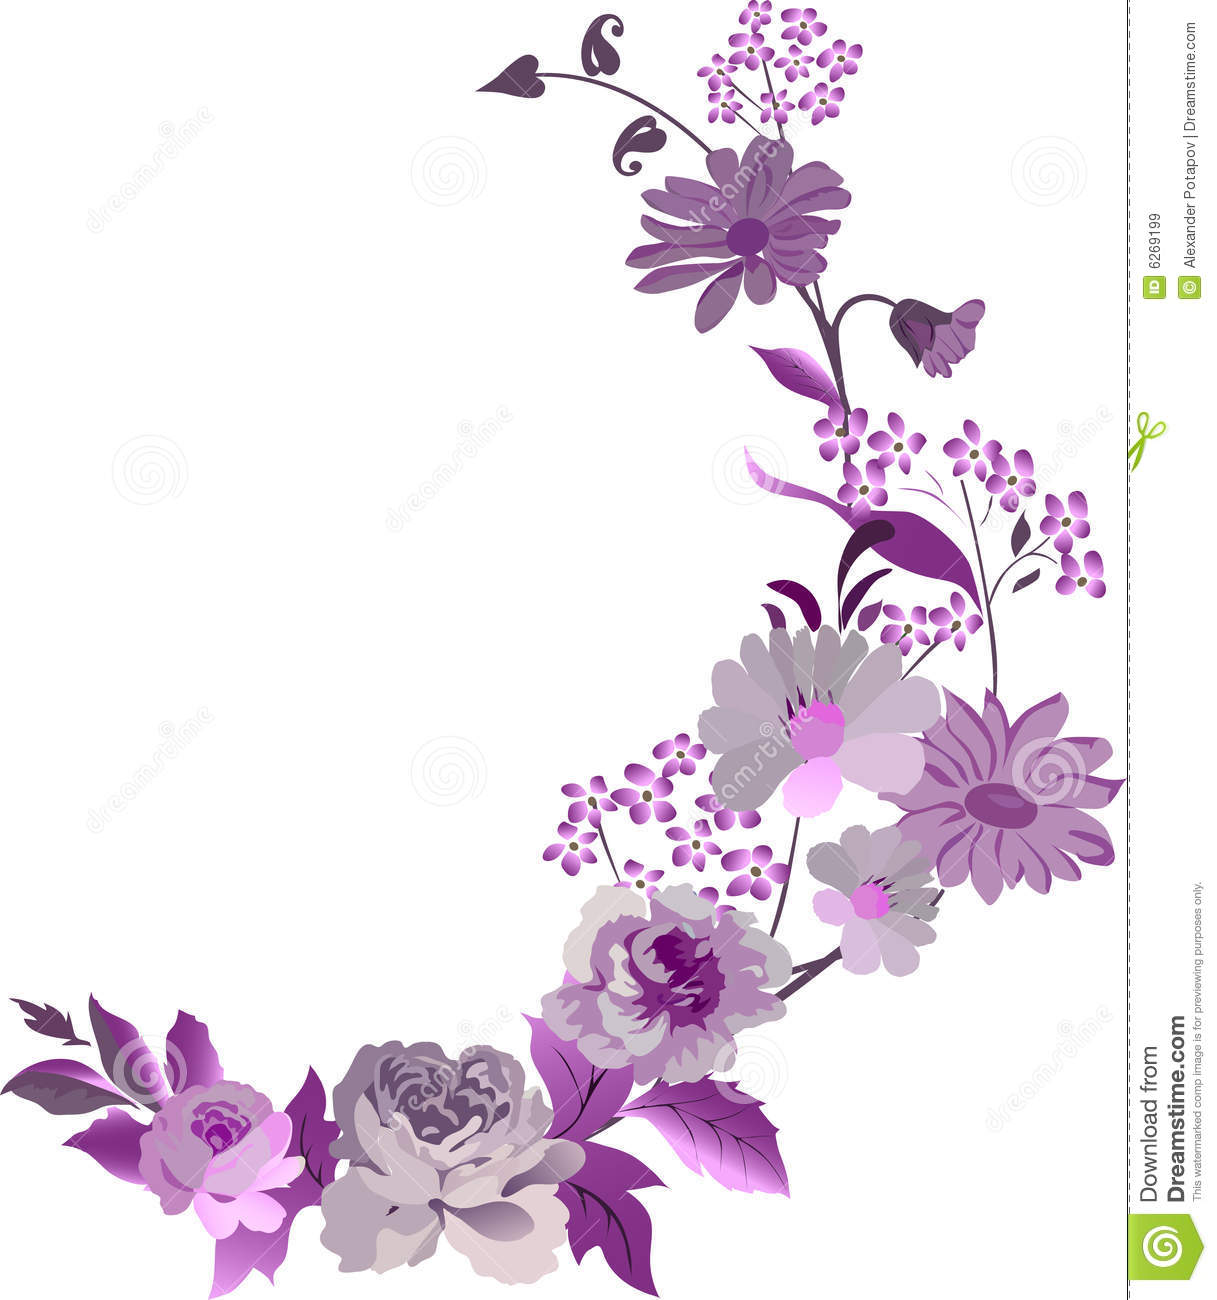 Corner with pink flowers stock illustration image of for Decoraciones para hojas